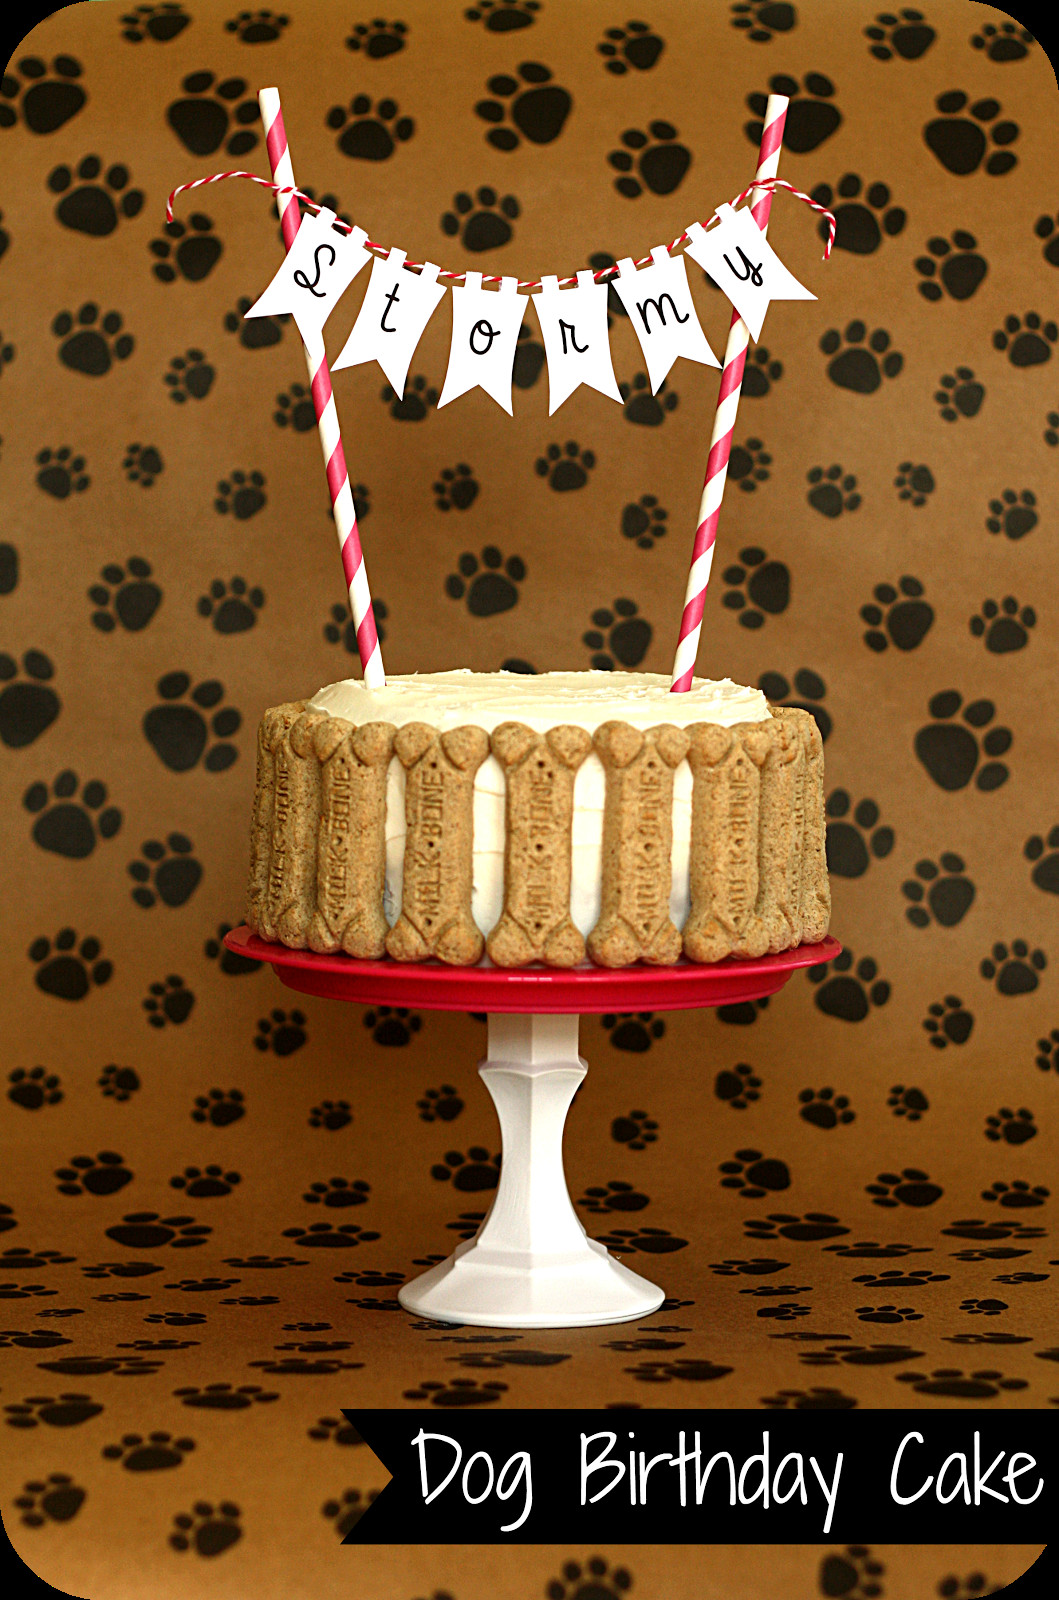 Best ideas about Doggie Birthday Cake . Save or Pin Keeping My Cents ¢¢¢ Dog Birthday Now.